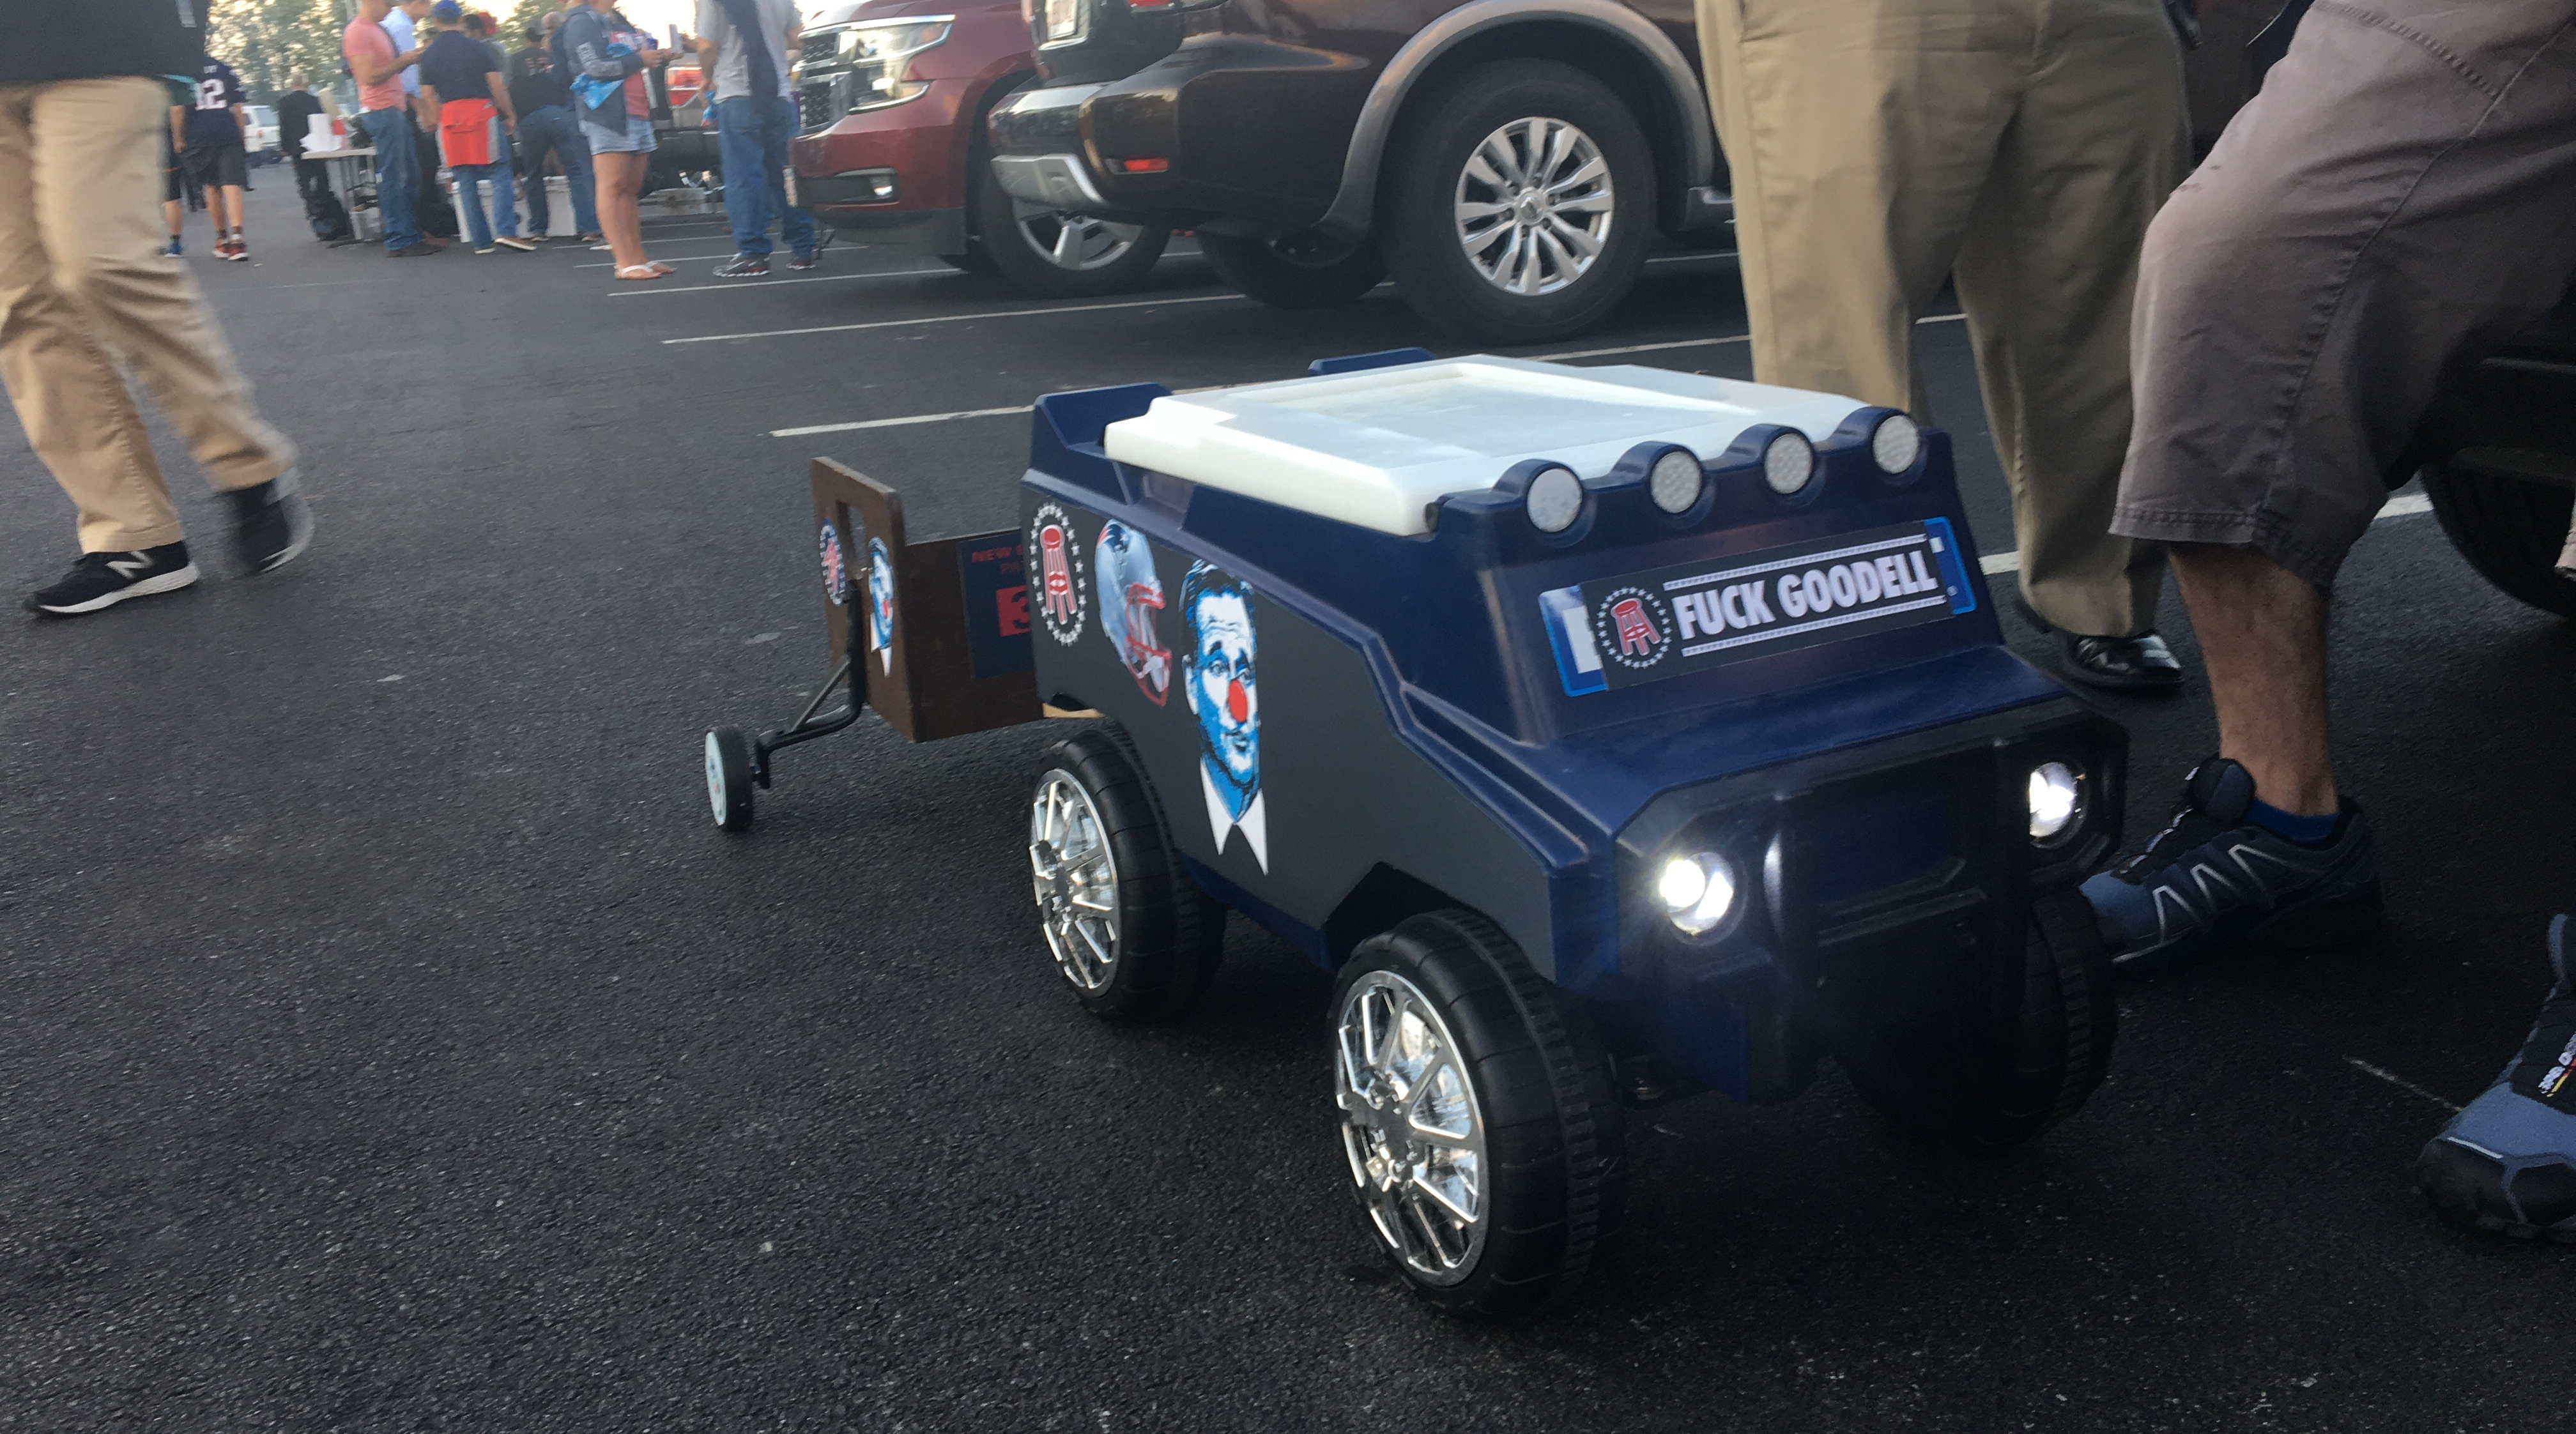 A festive toy truck spotted in the tailgating lots at Gillette Stadium.